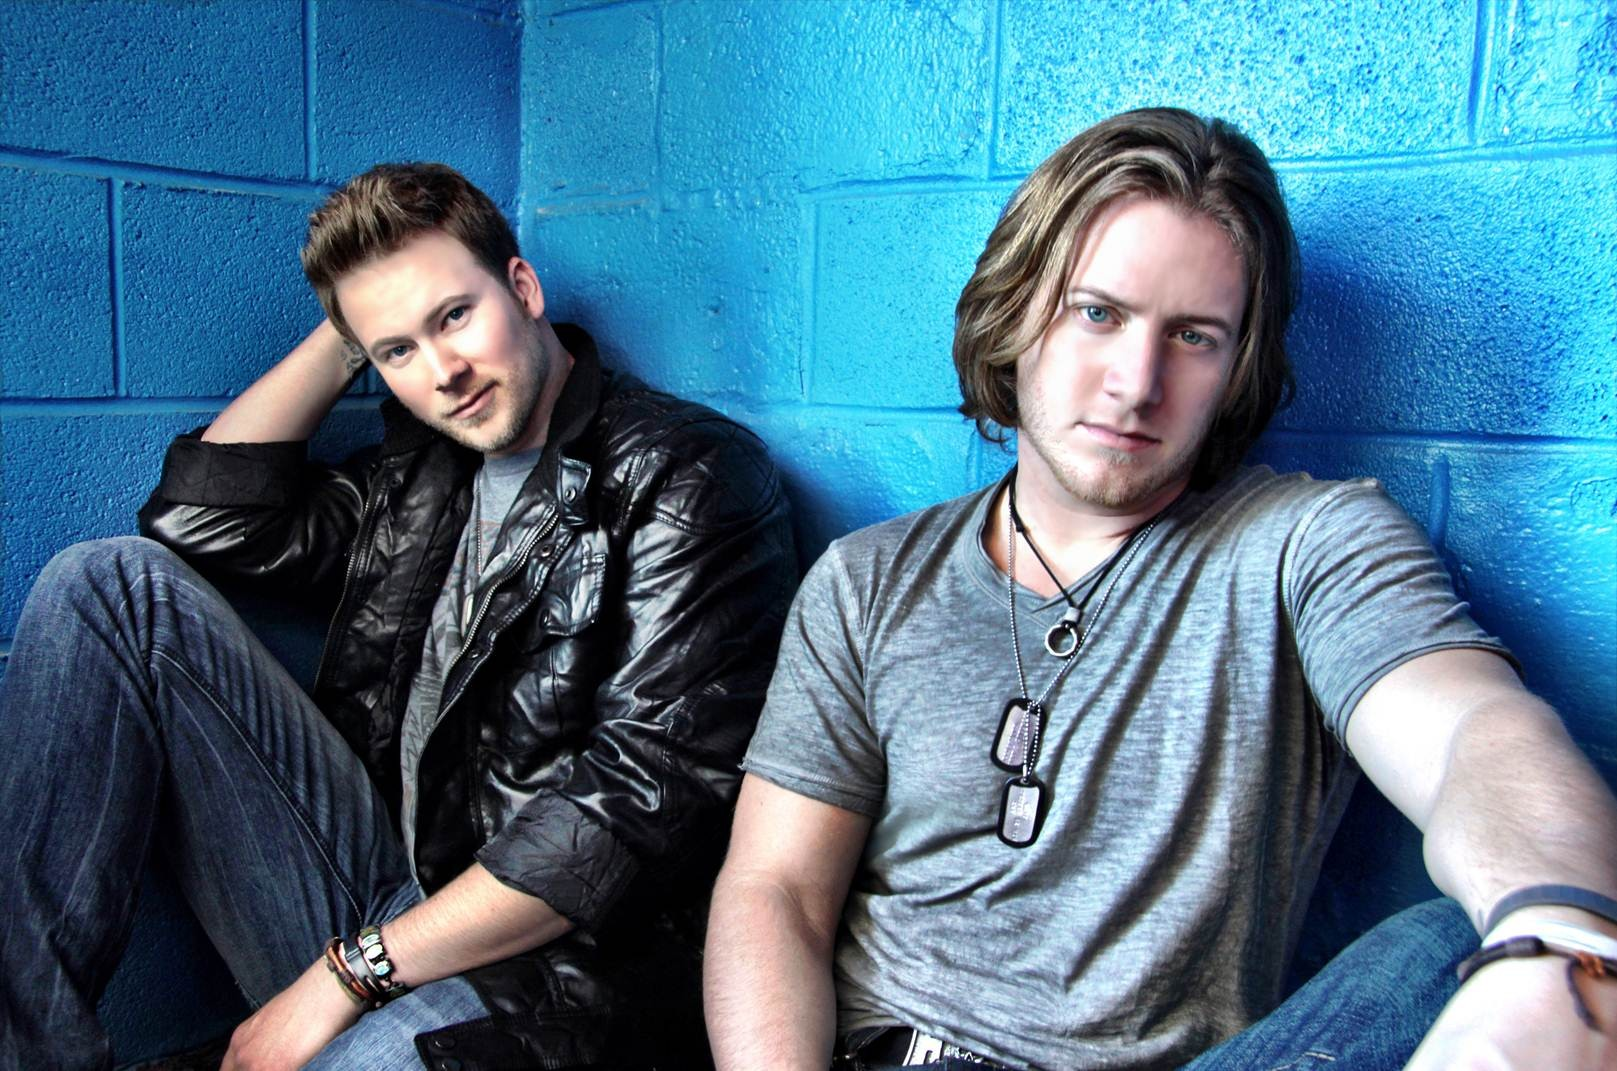 Florida-Georgia Line's Tyler Hubbard and Brian Kelley